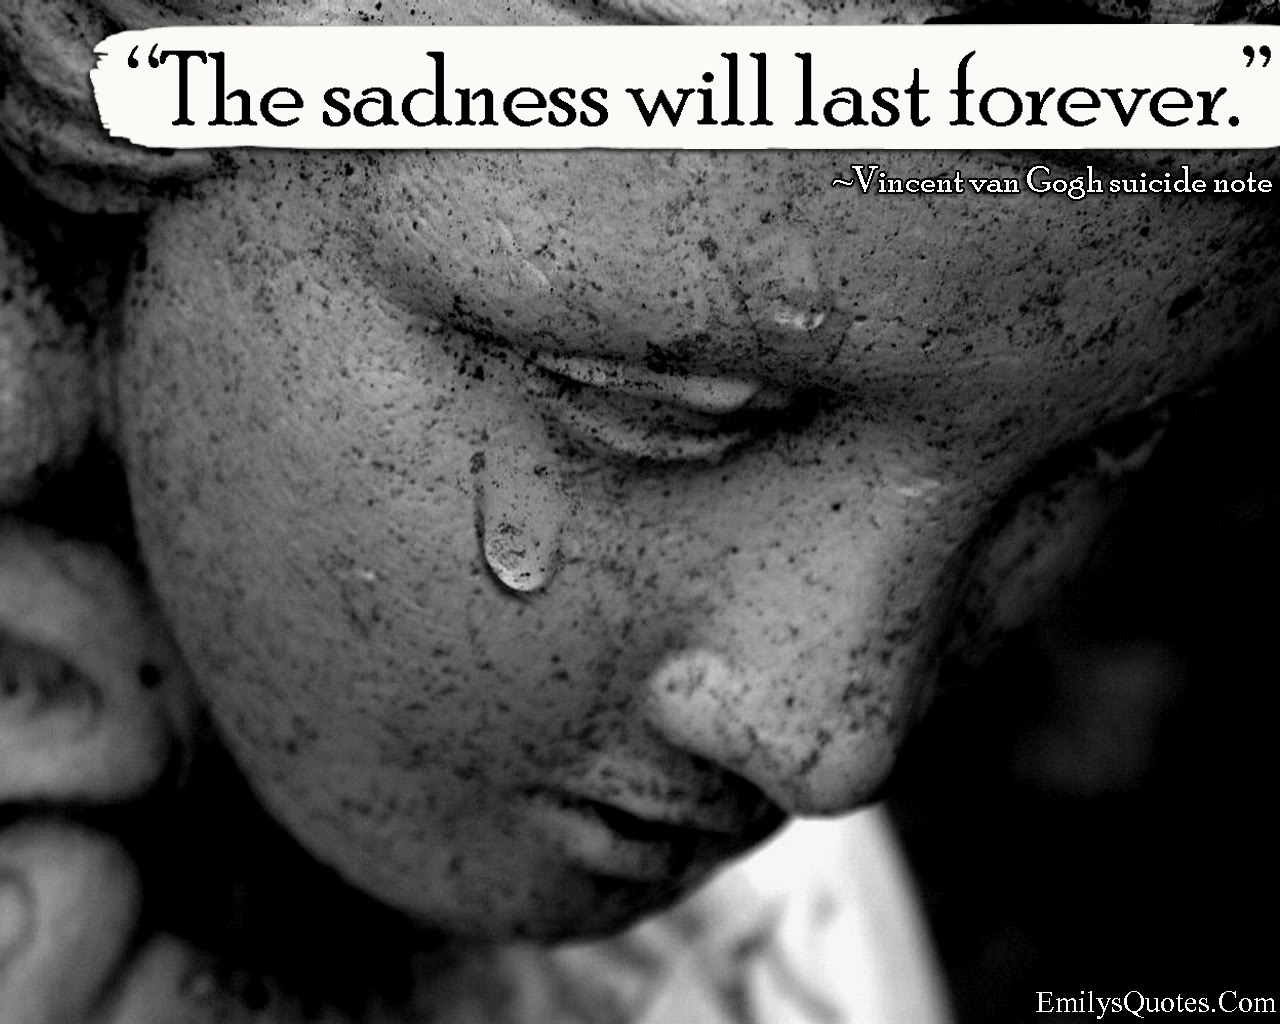 Sad Suicide Quotes The Sadness Will Last Forever  Popular Inspirational Quotes At